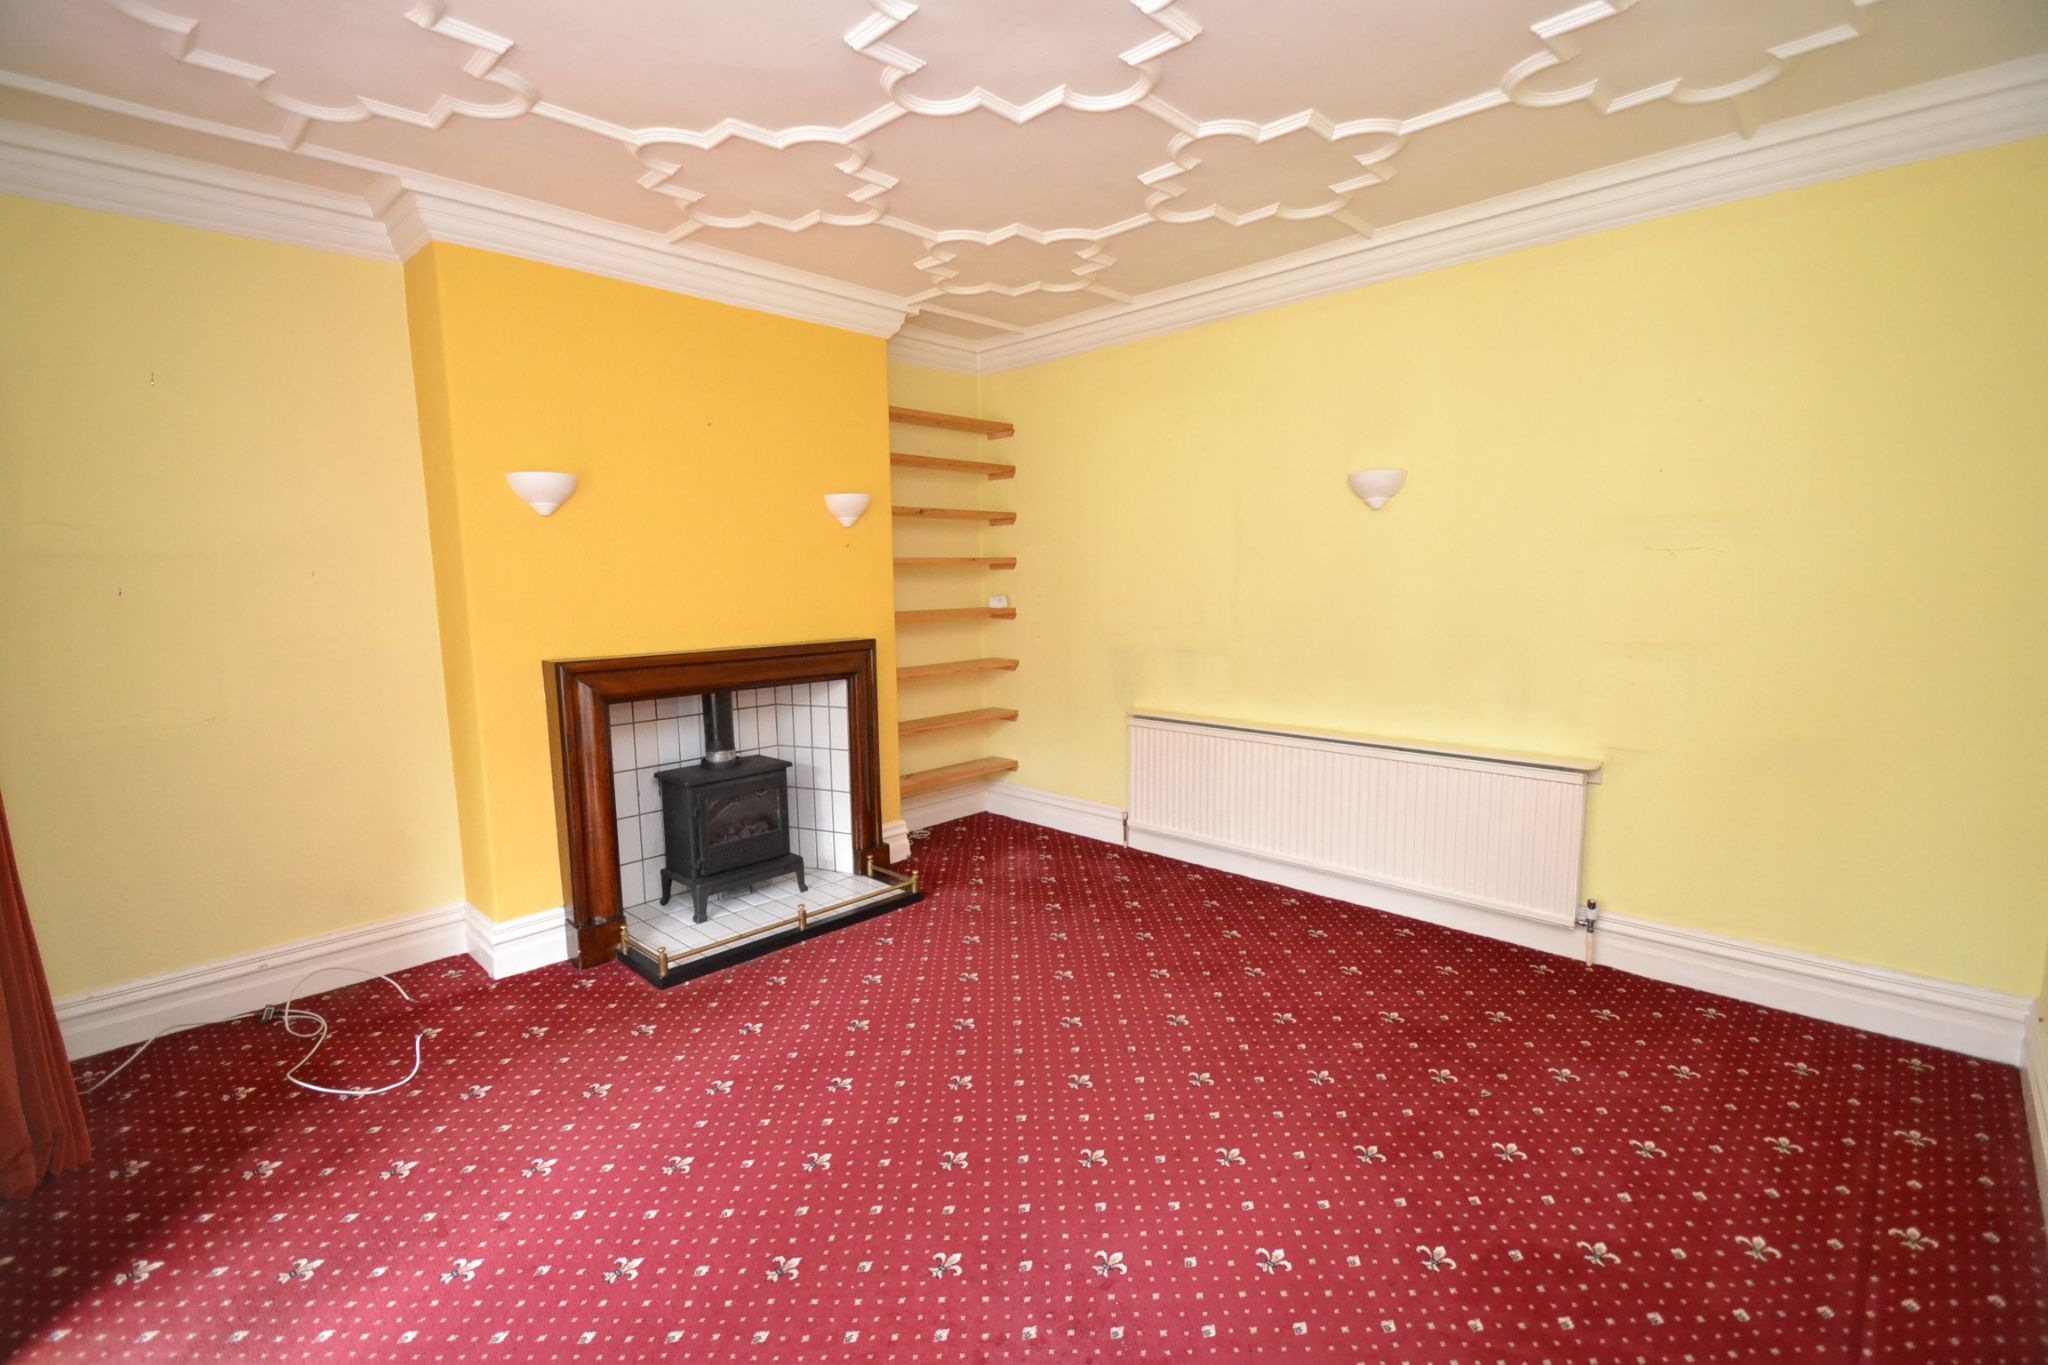 6 Bedroom Semi-detached House For Sale - Photograph 6